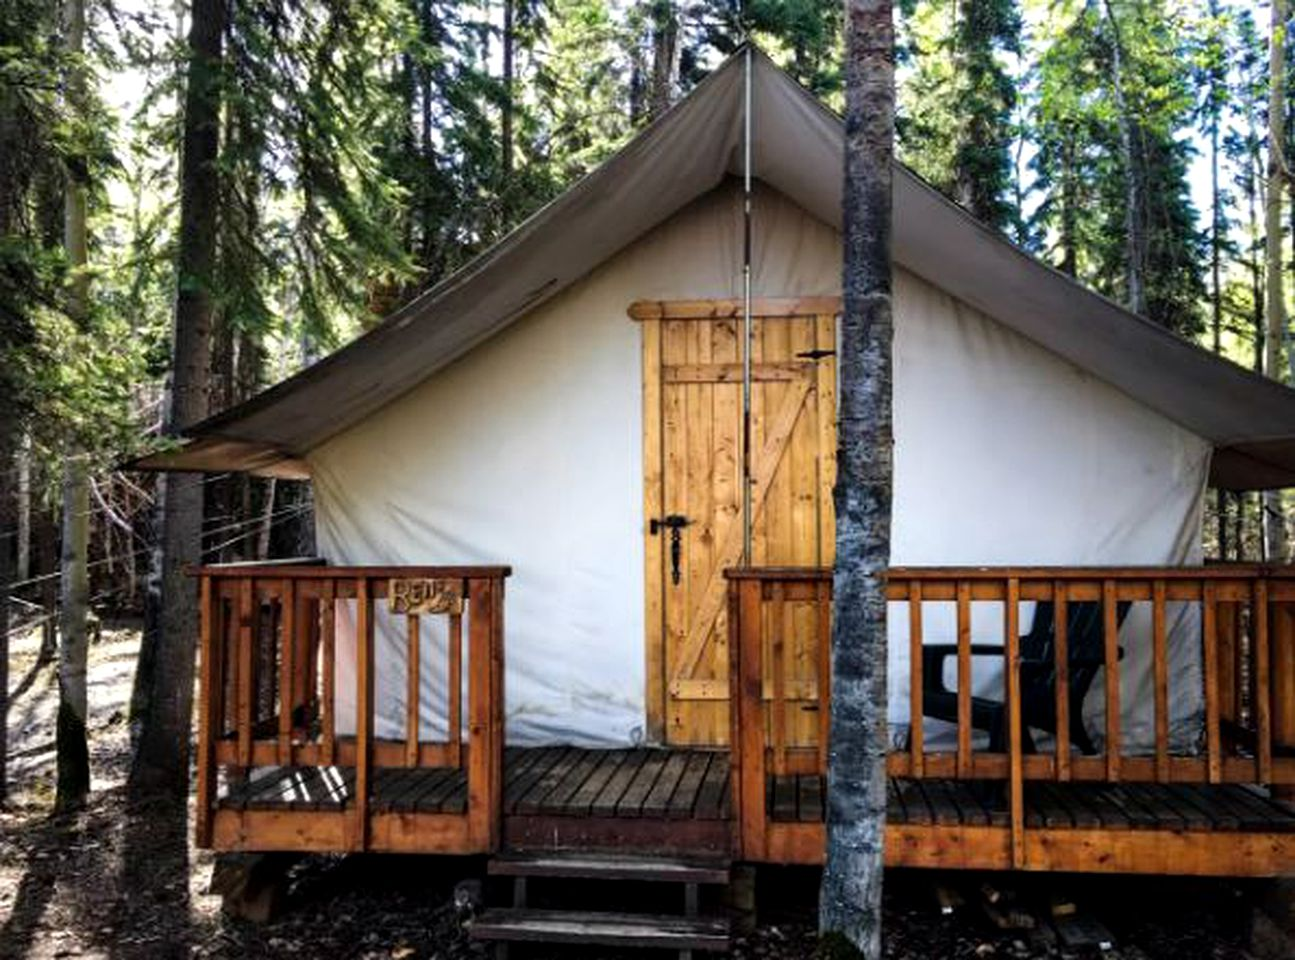 Tented Cabins (Fairbanks, Alaska, United States)